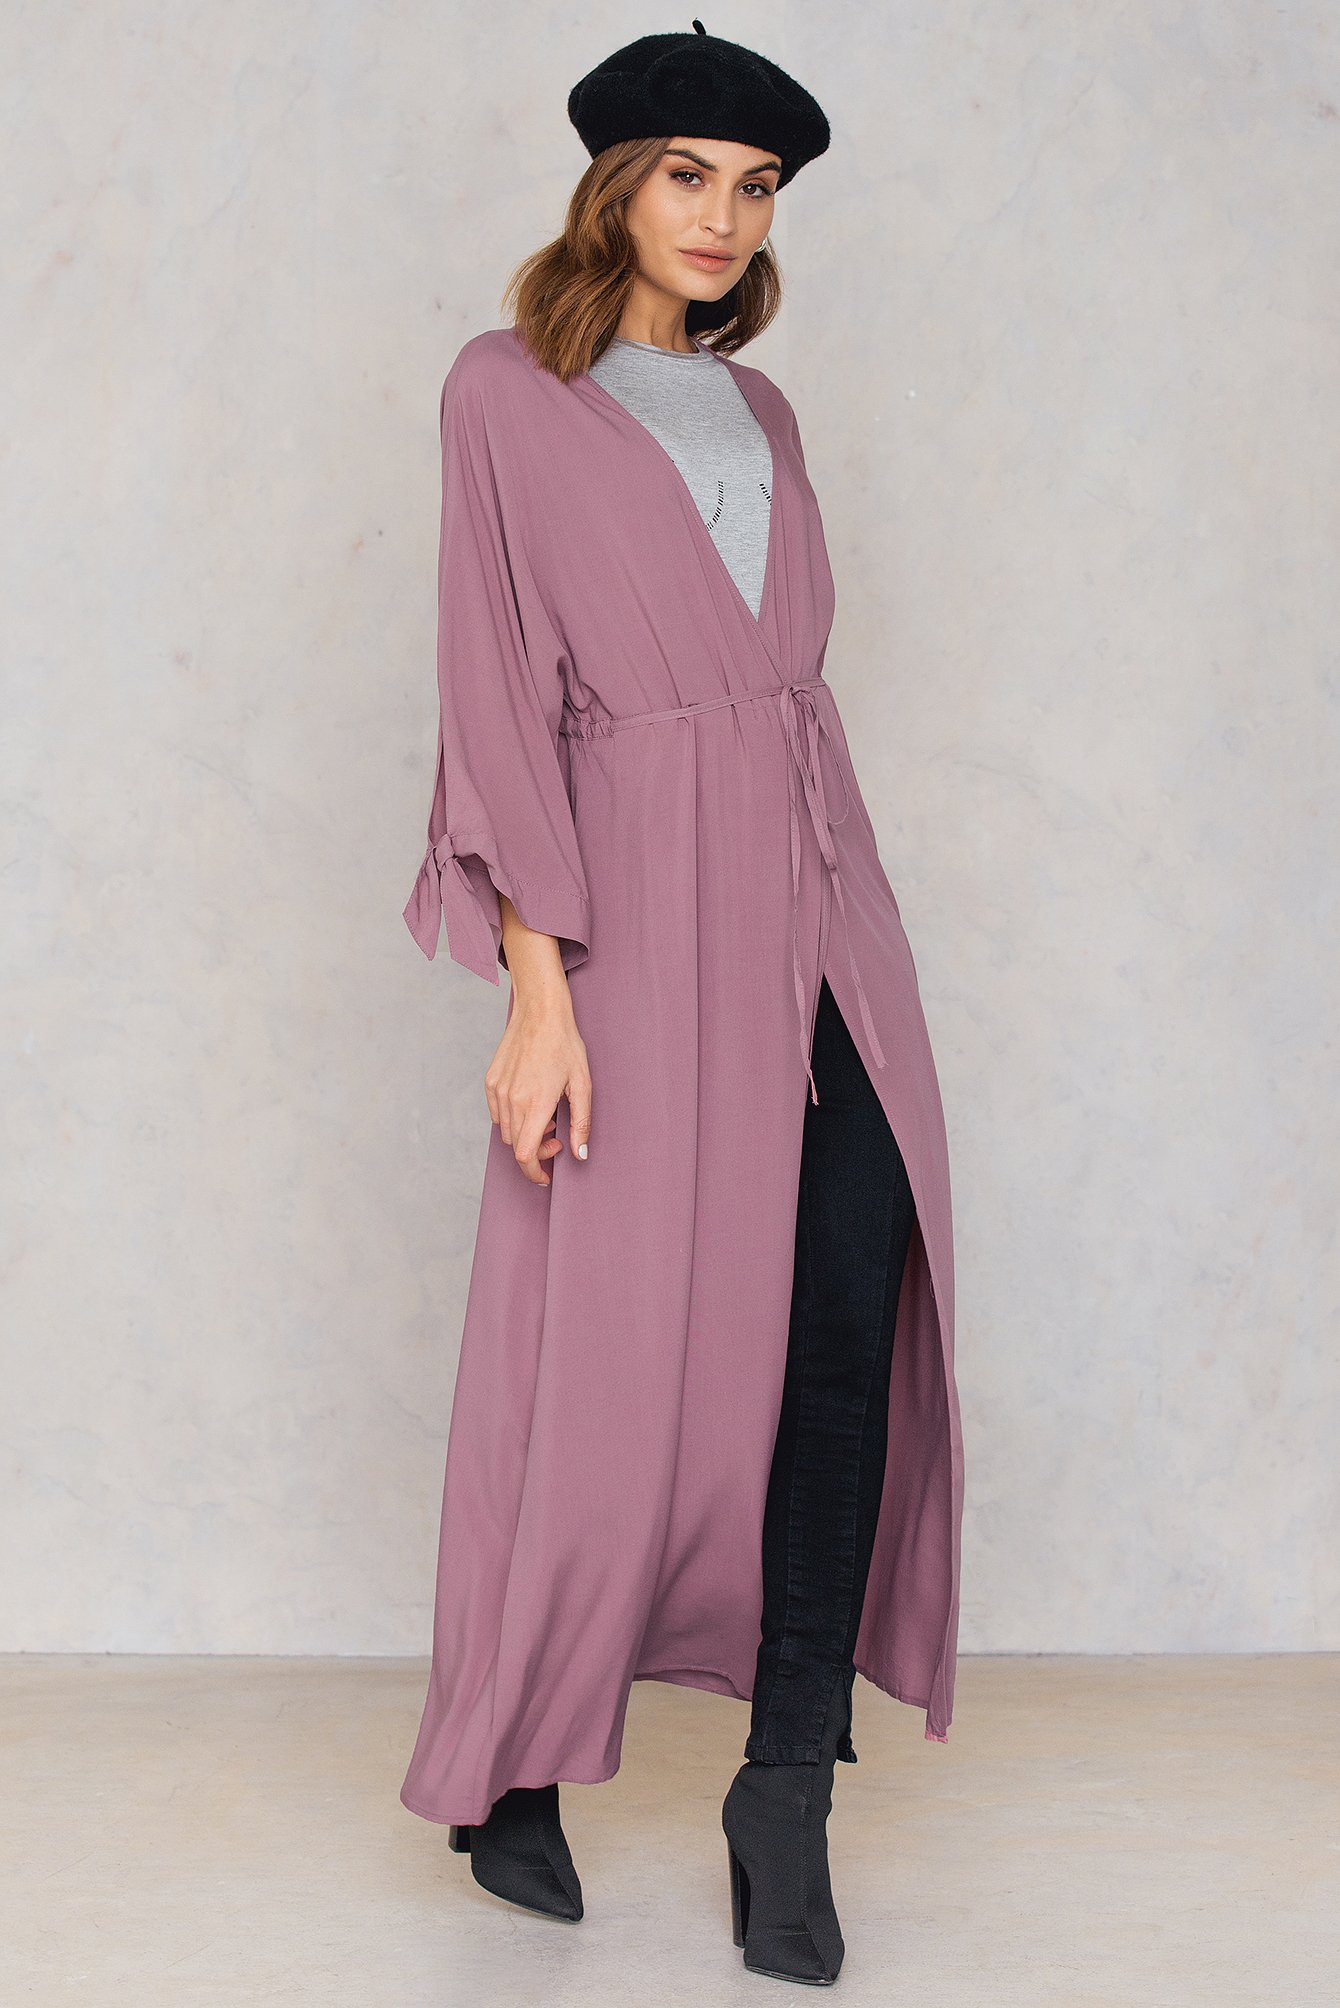 NA-KD Trend Tied Sleeve Coat Dress Pink